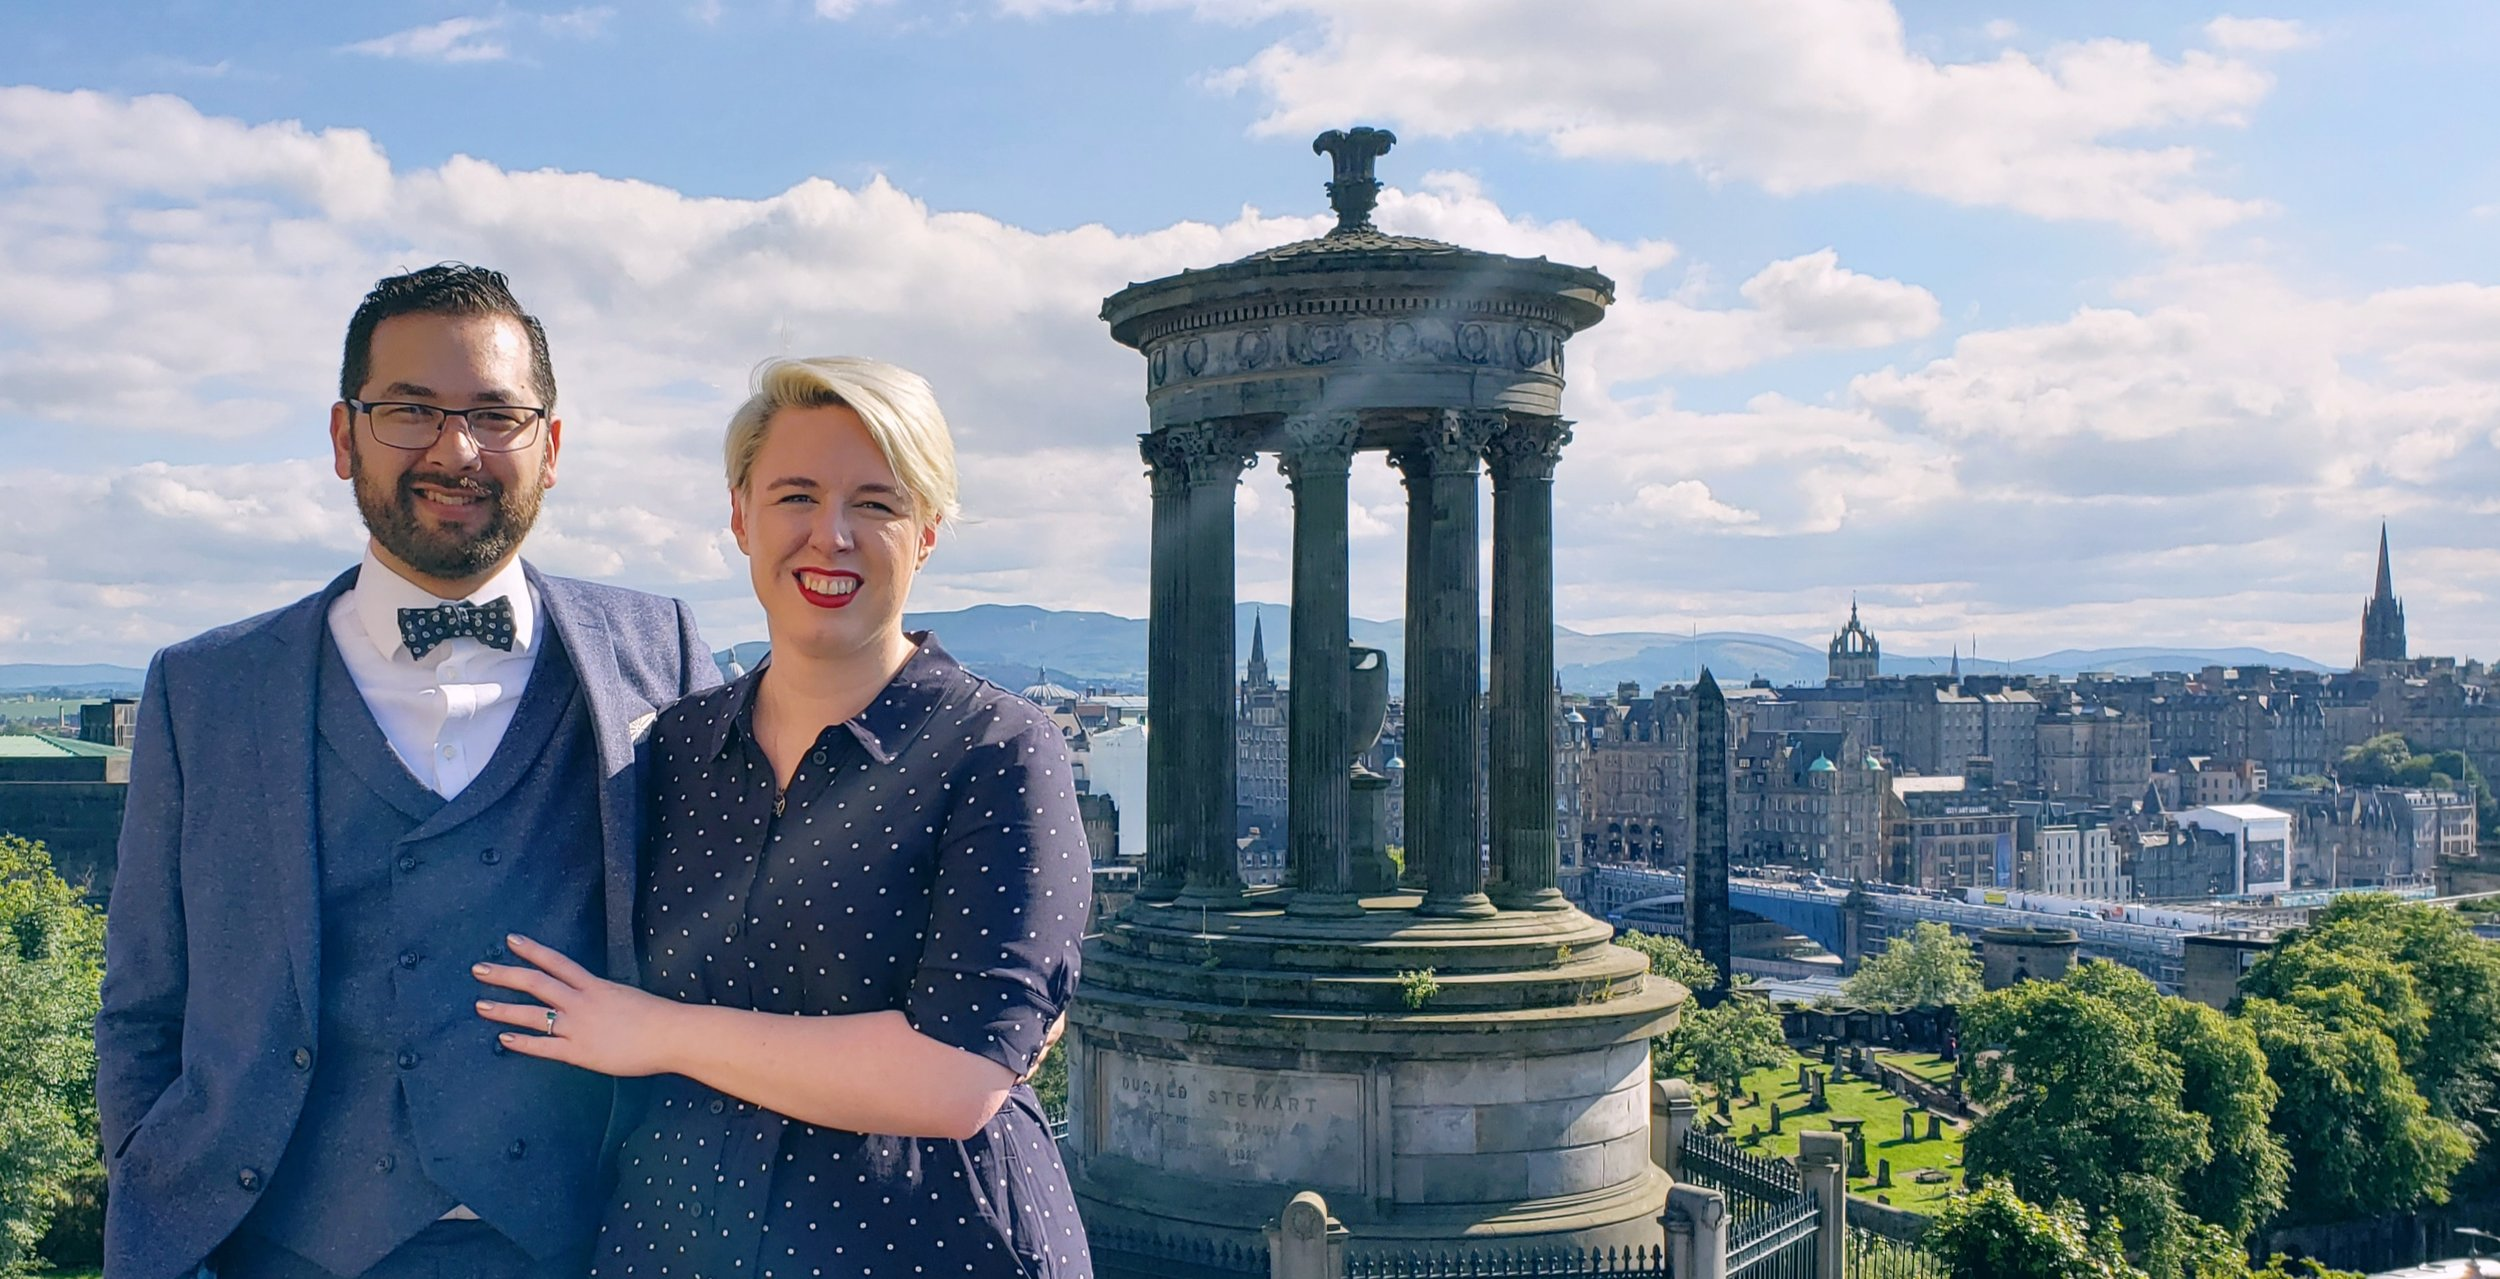 Eimear and I after getting engaged in Edinburgh, Scotland. July 2019.